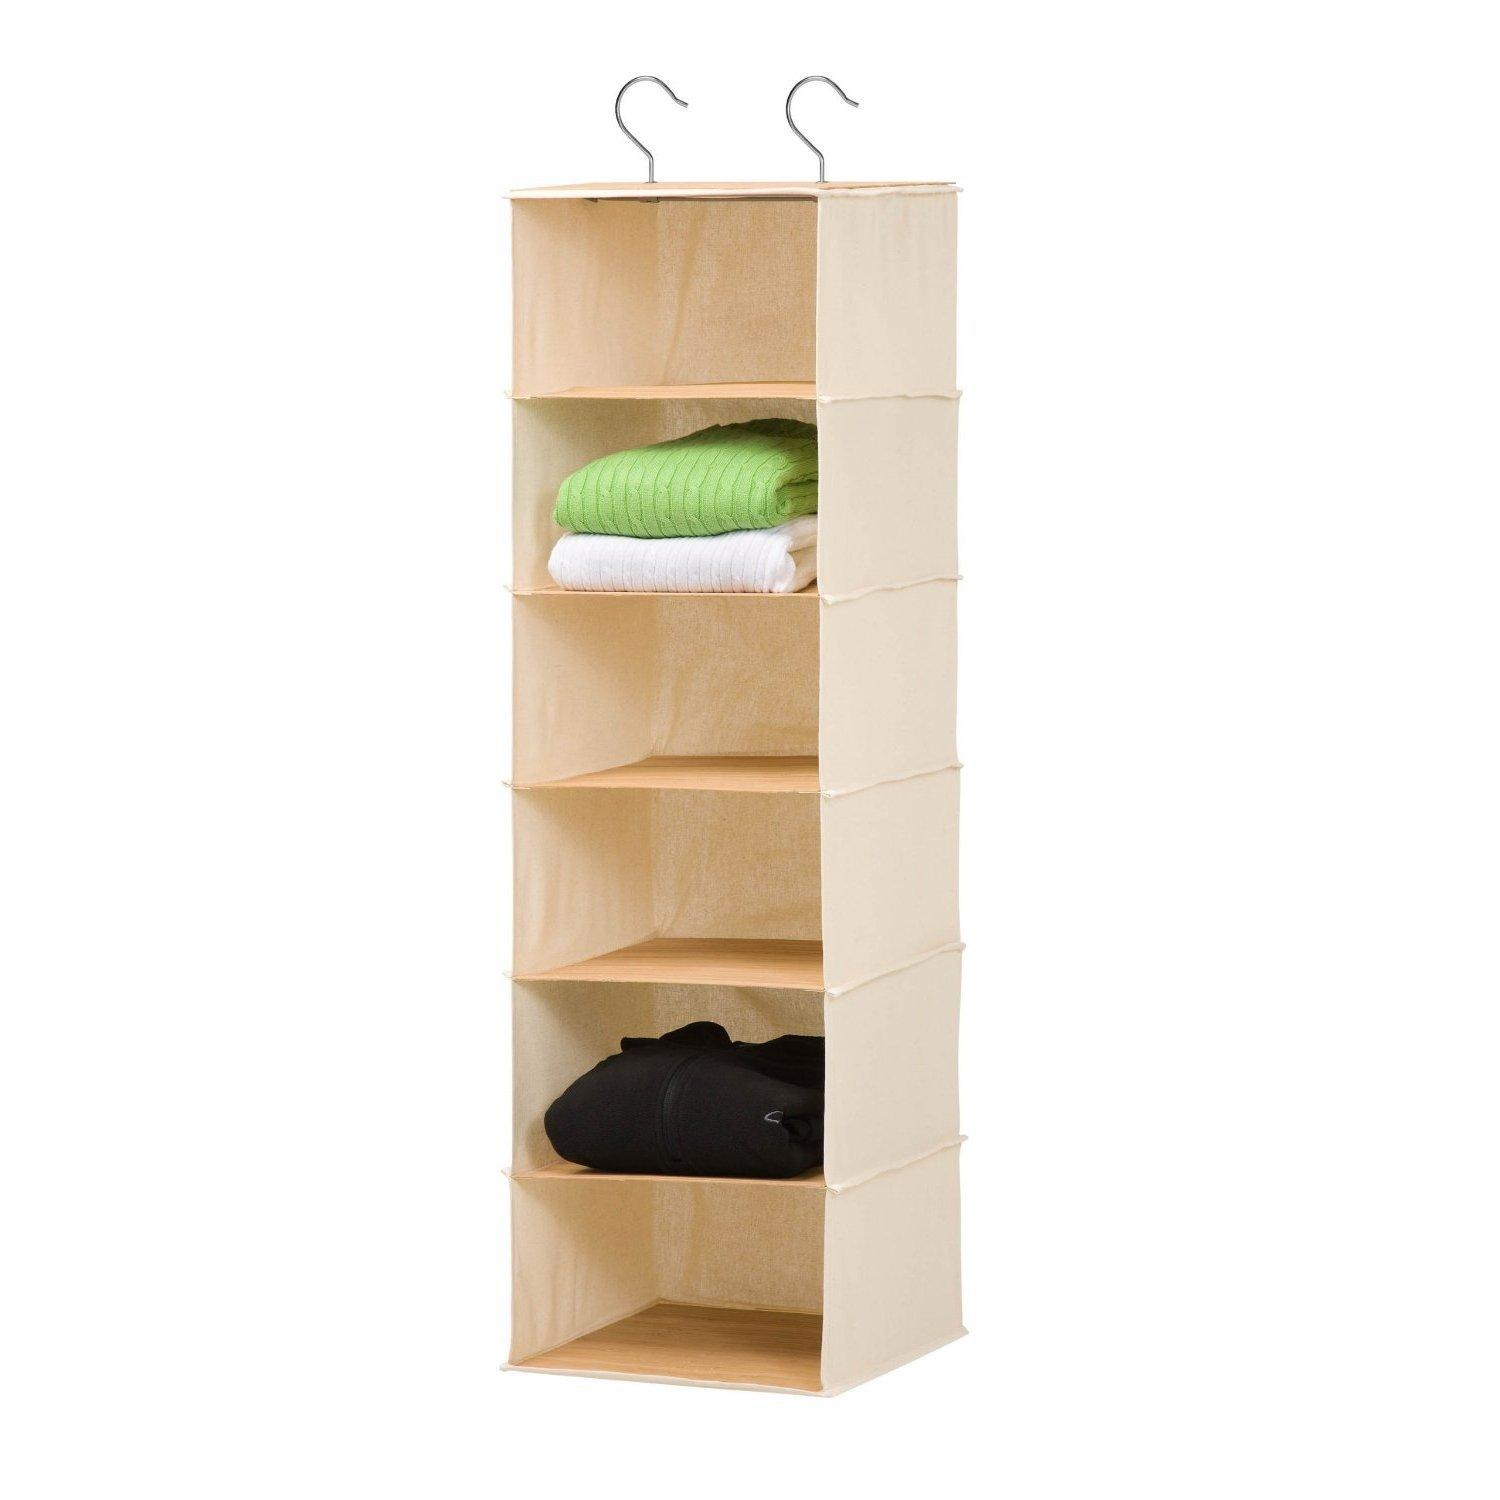 Honey-Can-Do 6-Shelf Hanging Closet Organizer, Bamboo/Canvas SFT-01003